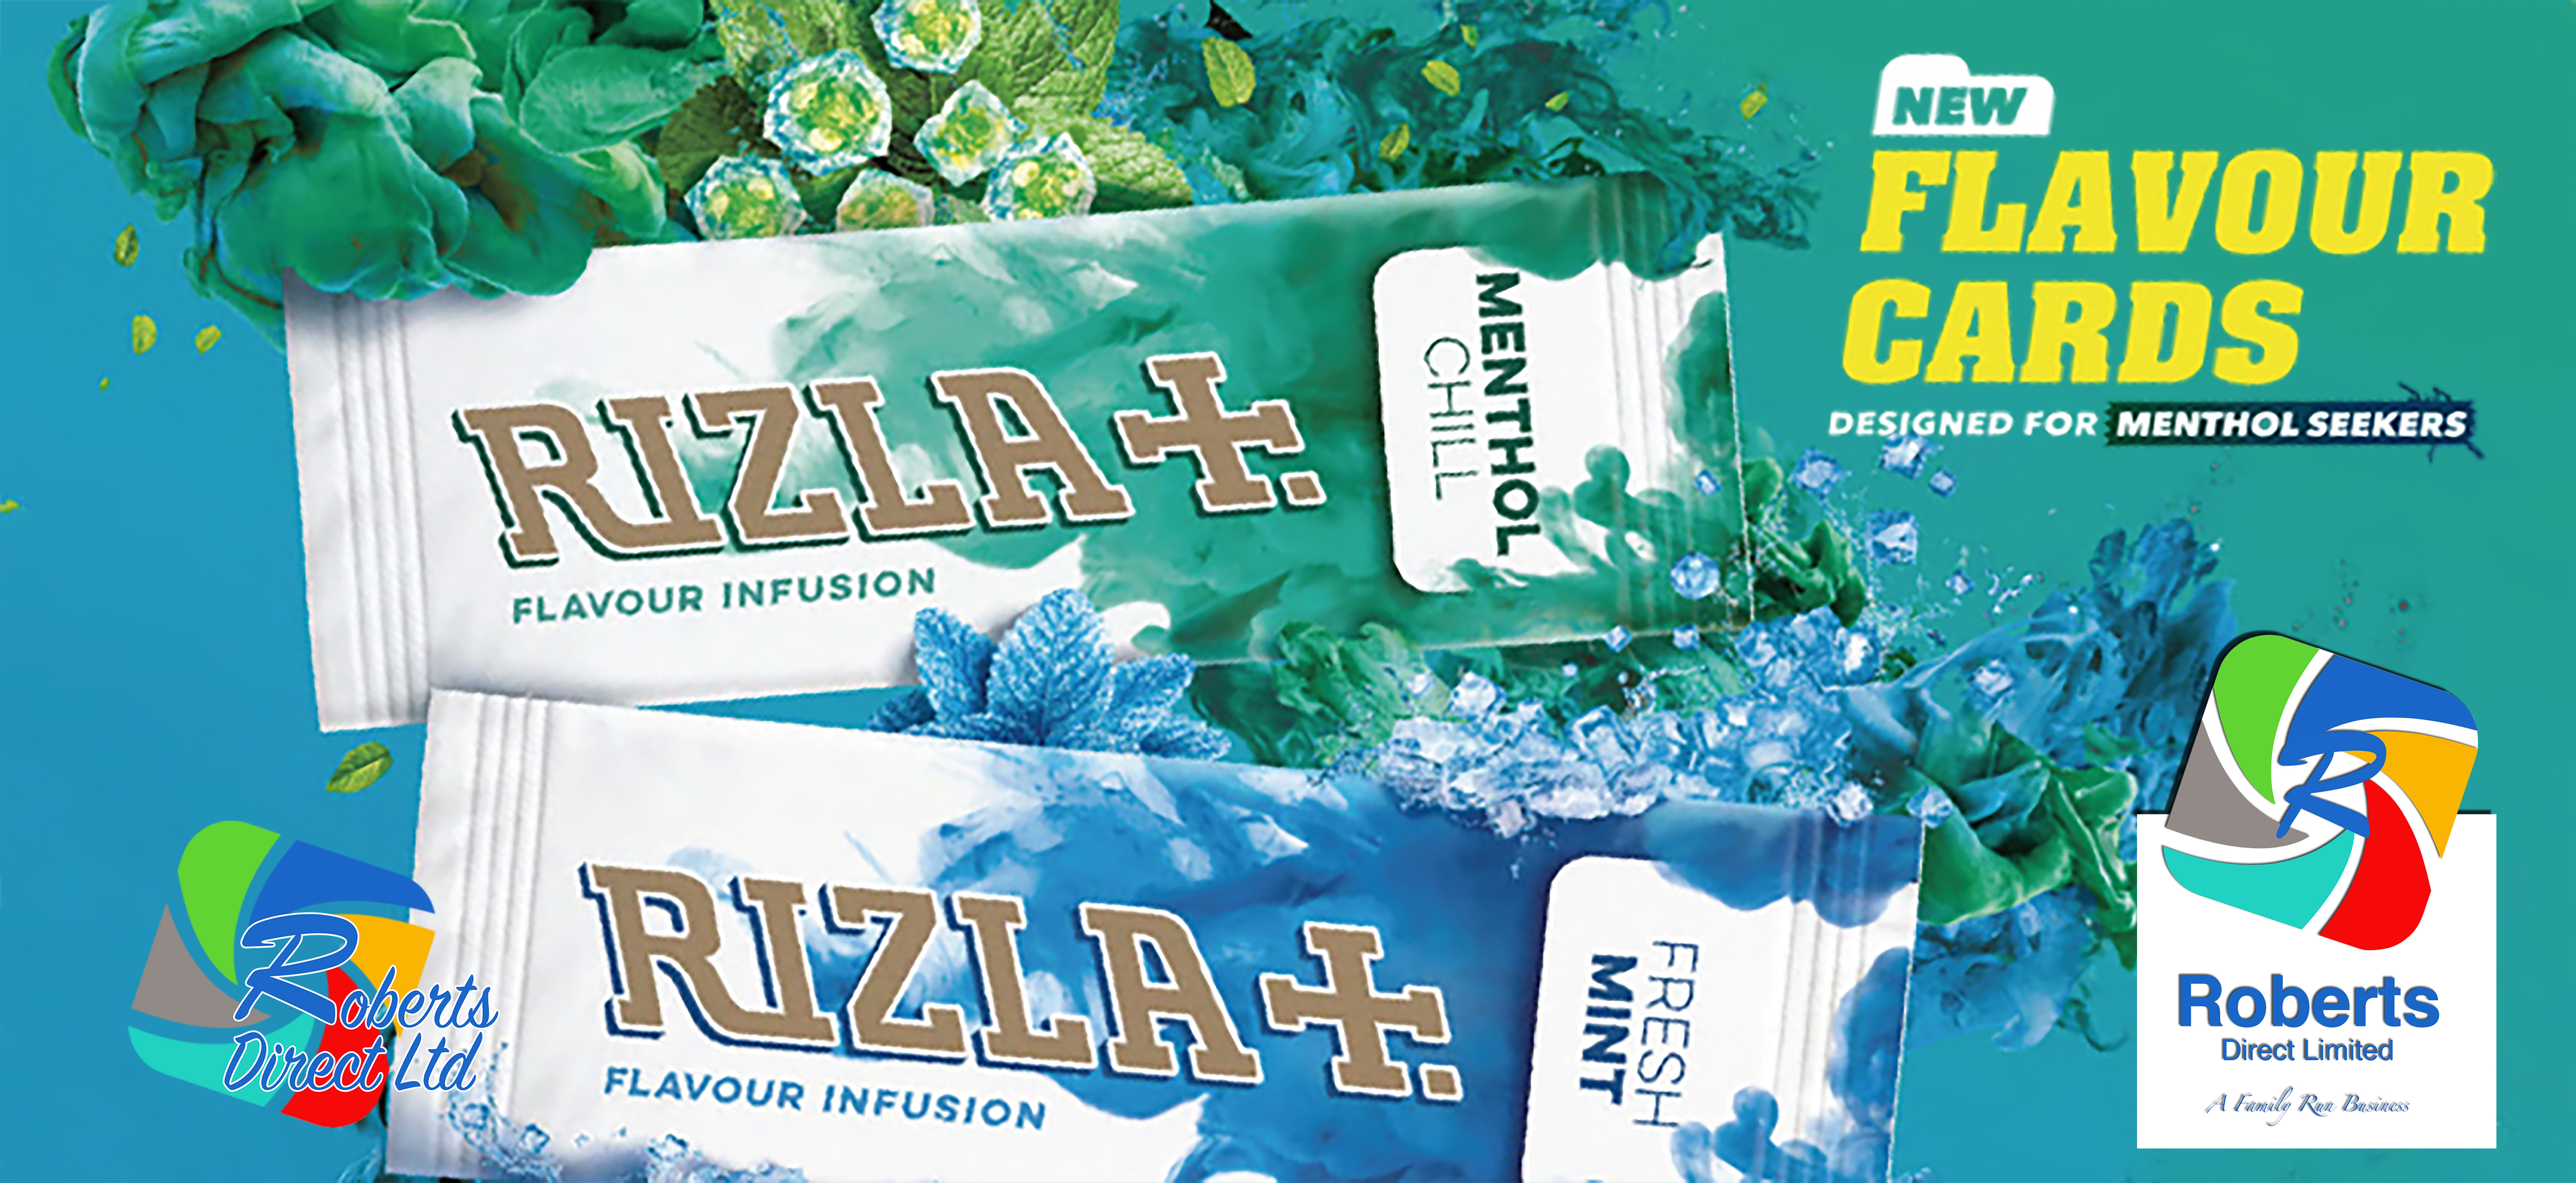 rizla-flavour-cards-banner-sml.jpg